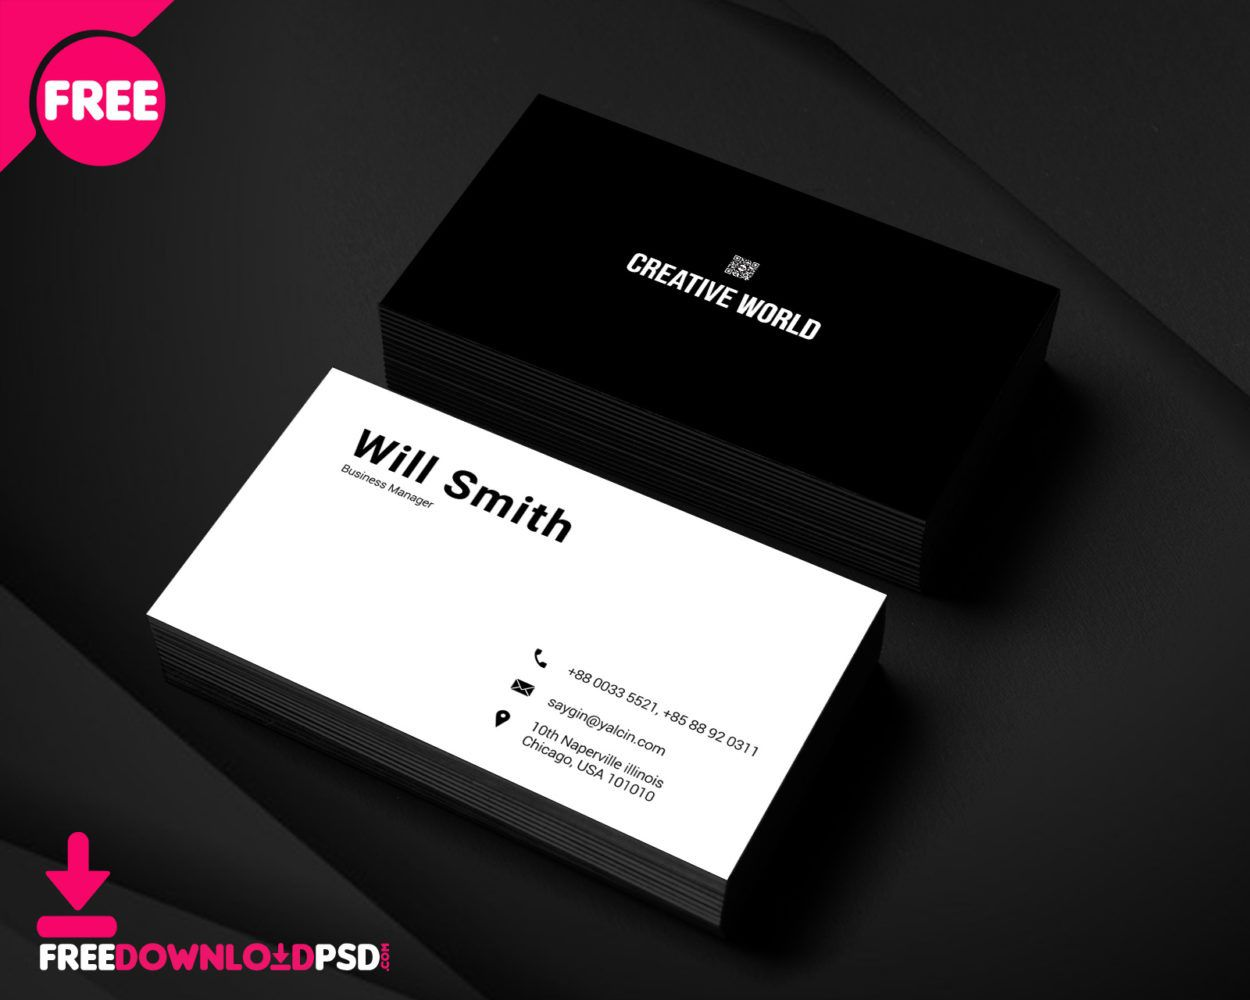 008 Surprising Minimal Busines Card Template Psd Inspiration  Simple Visiting Design In Photoshop File Free DownloadFull